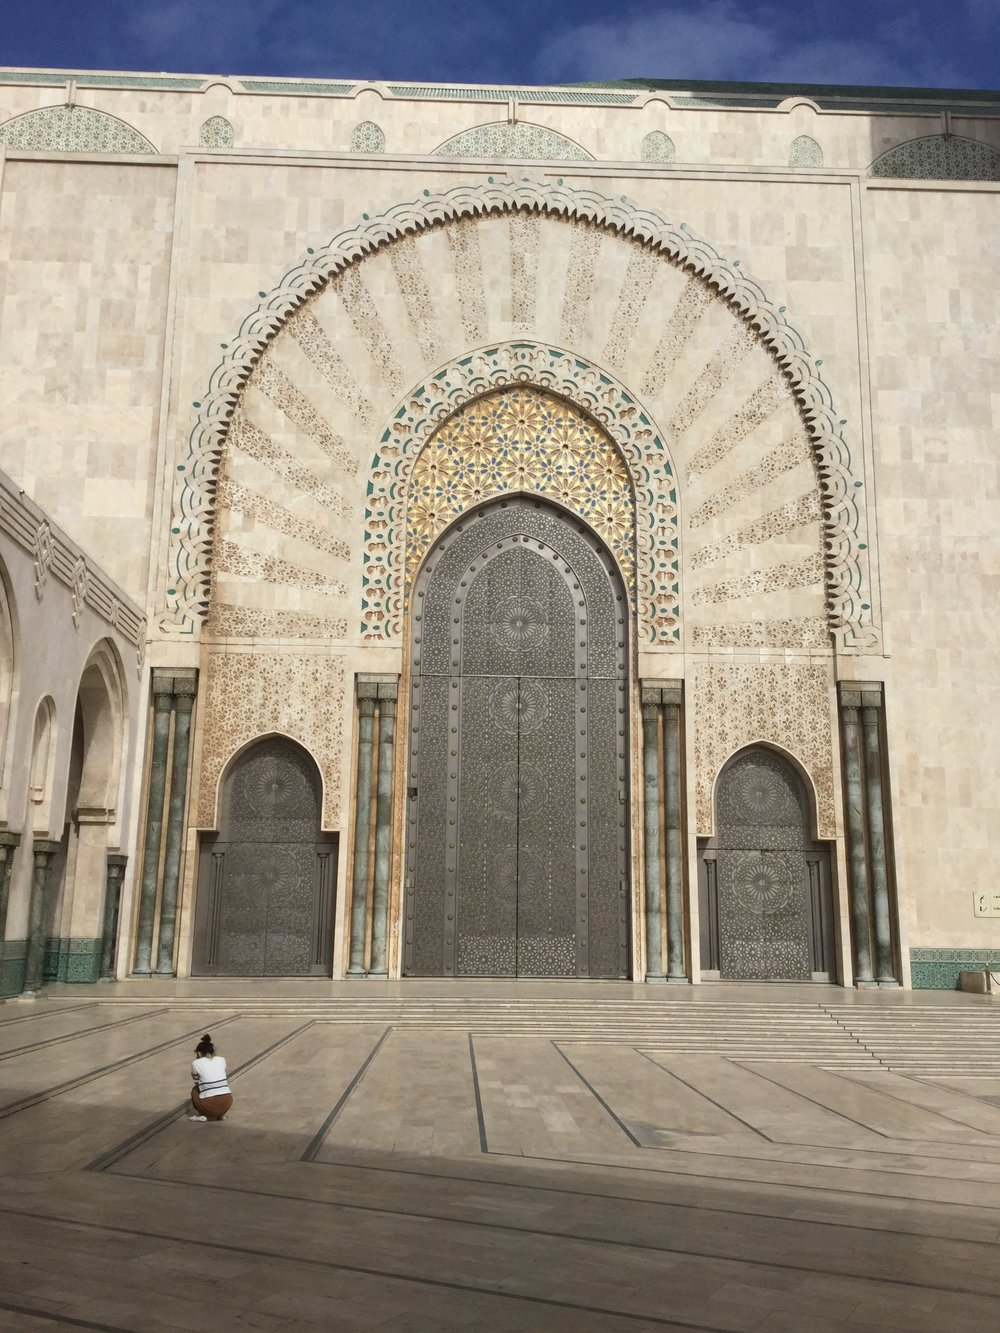 Enormous doors. Just enormous.